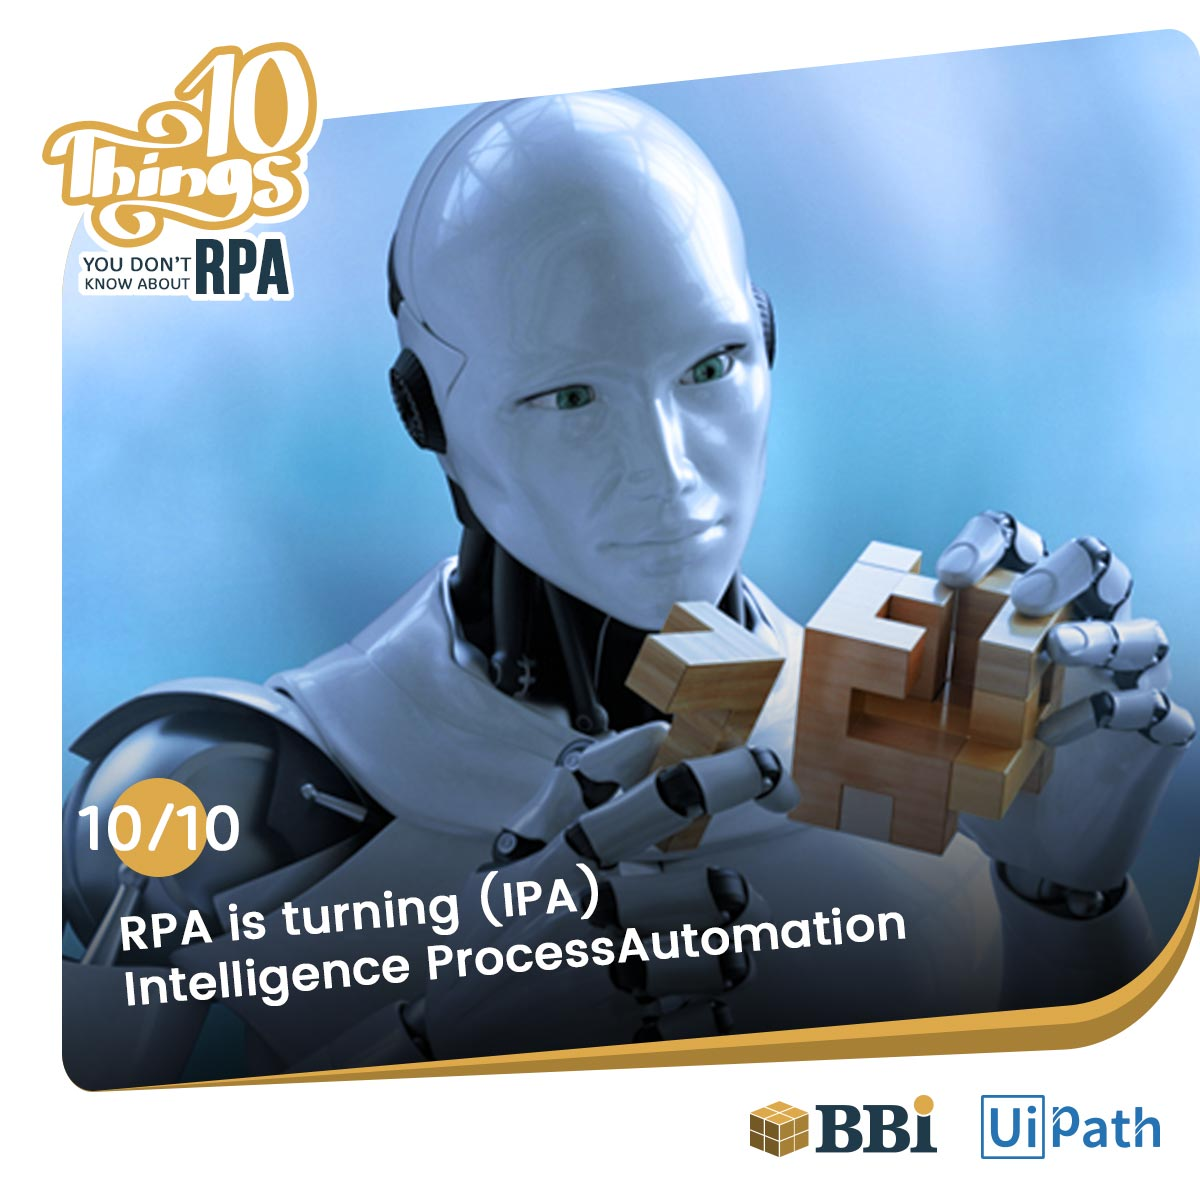 RPA IPA artificial intelligence automation